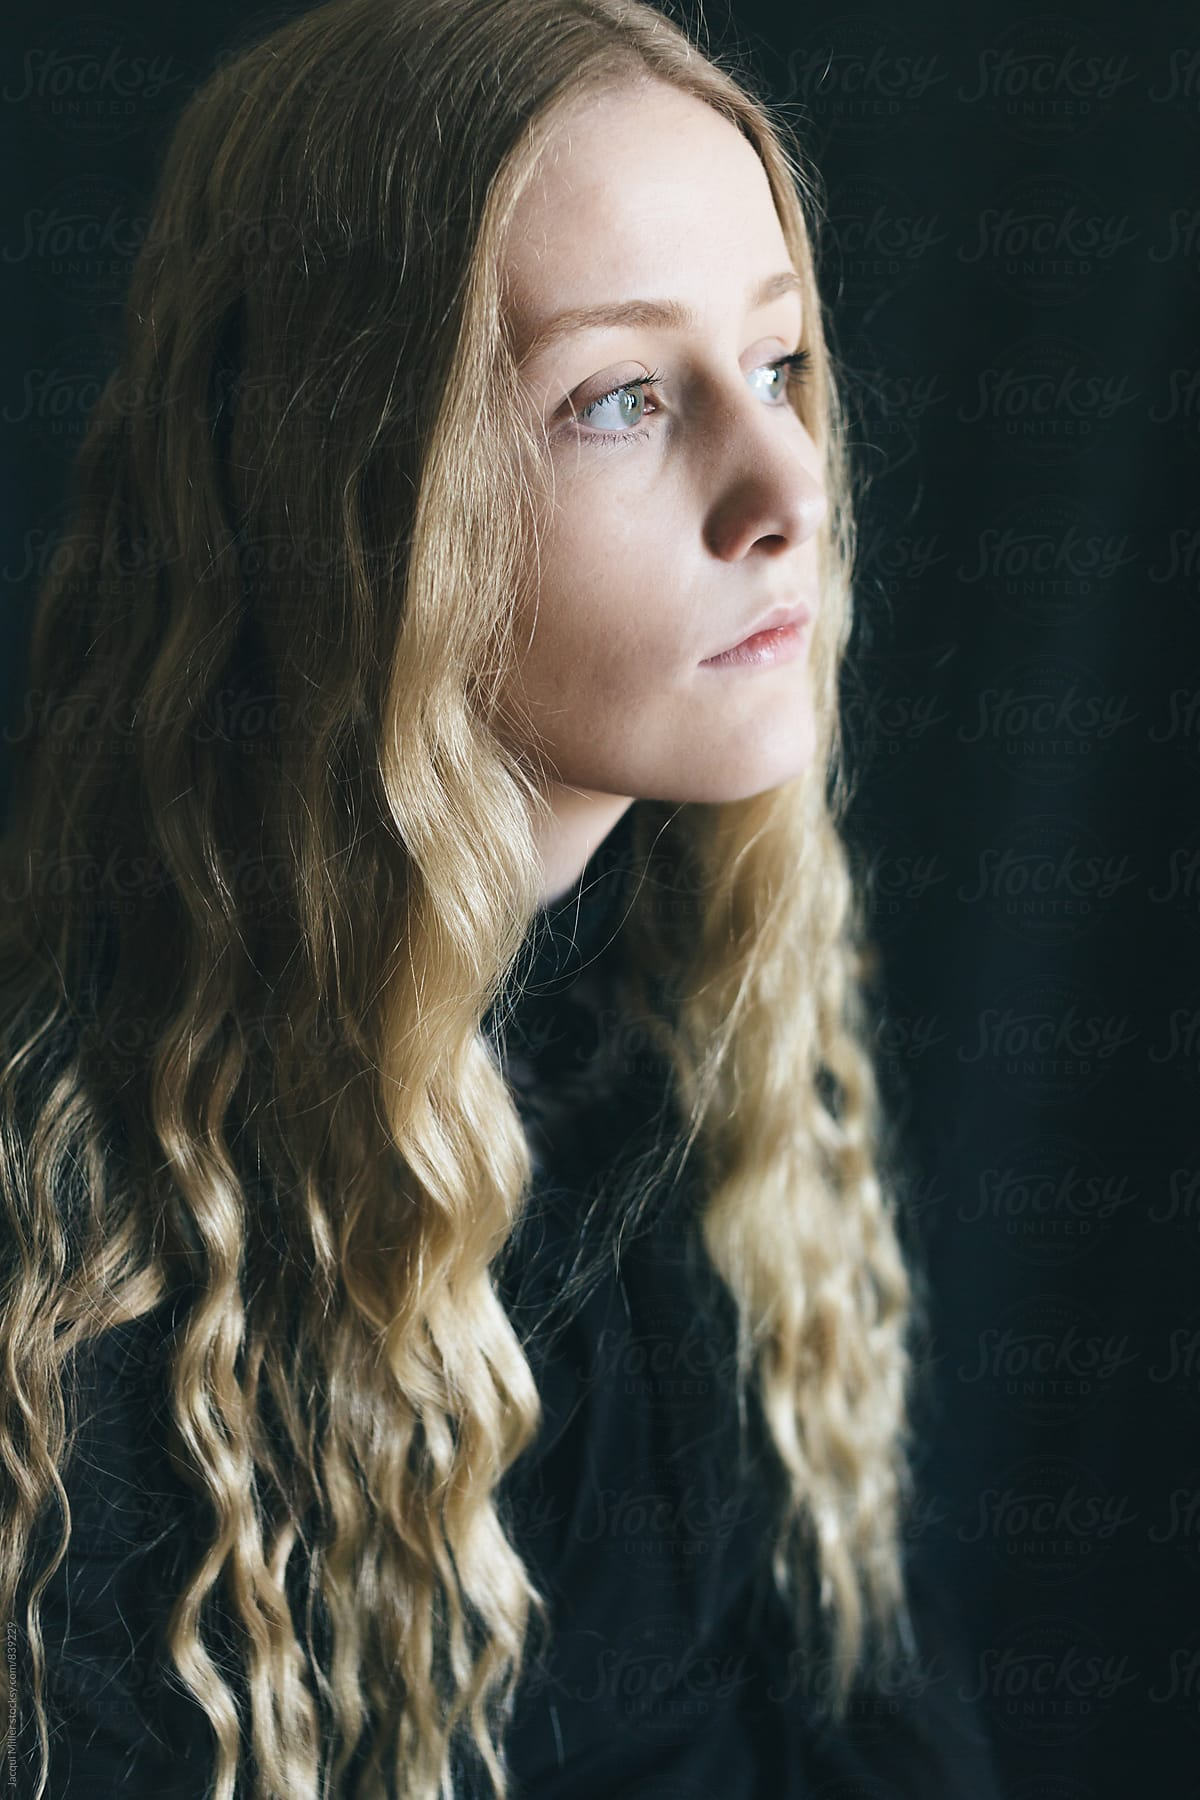 Contemplative teen girl with long blonde hair by Jacqui